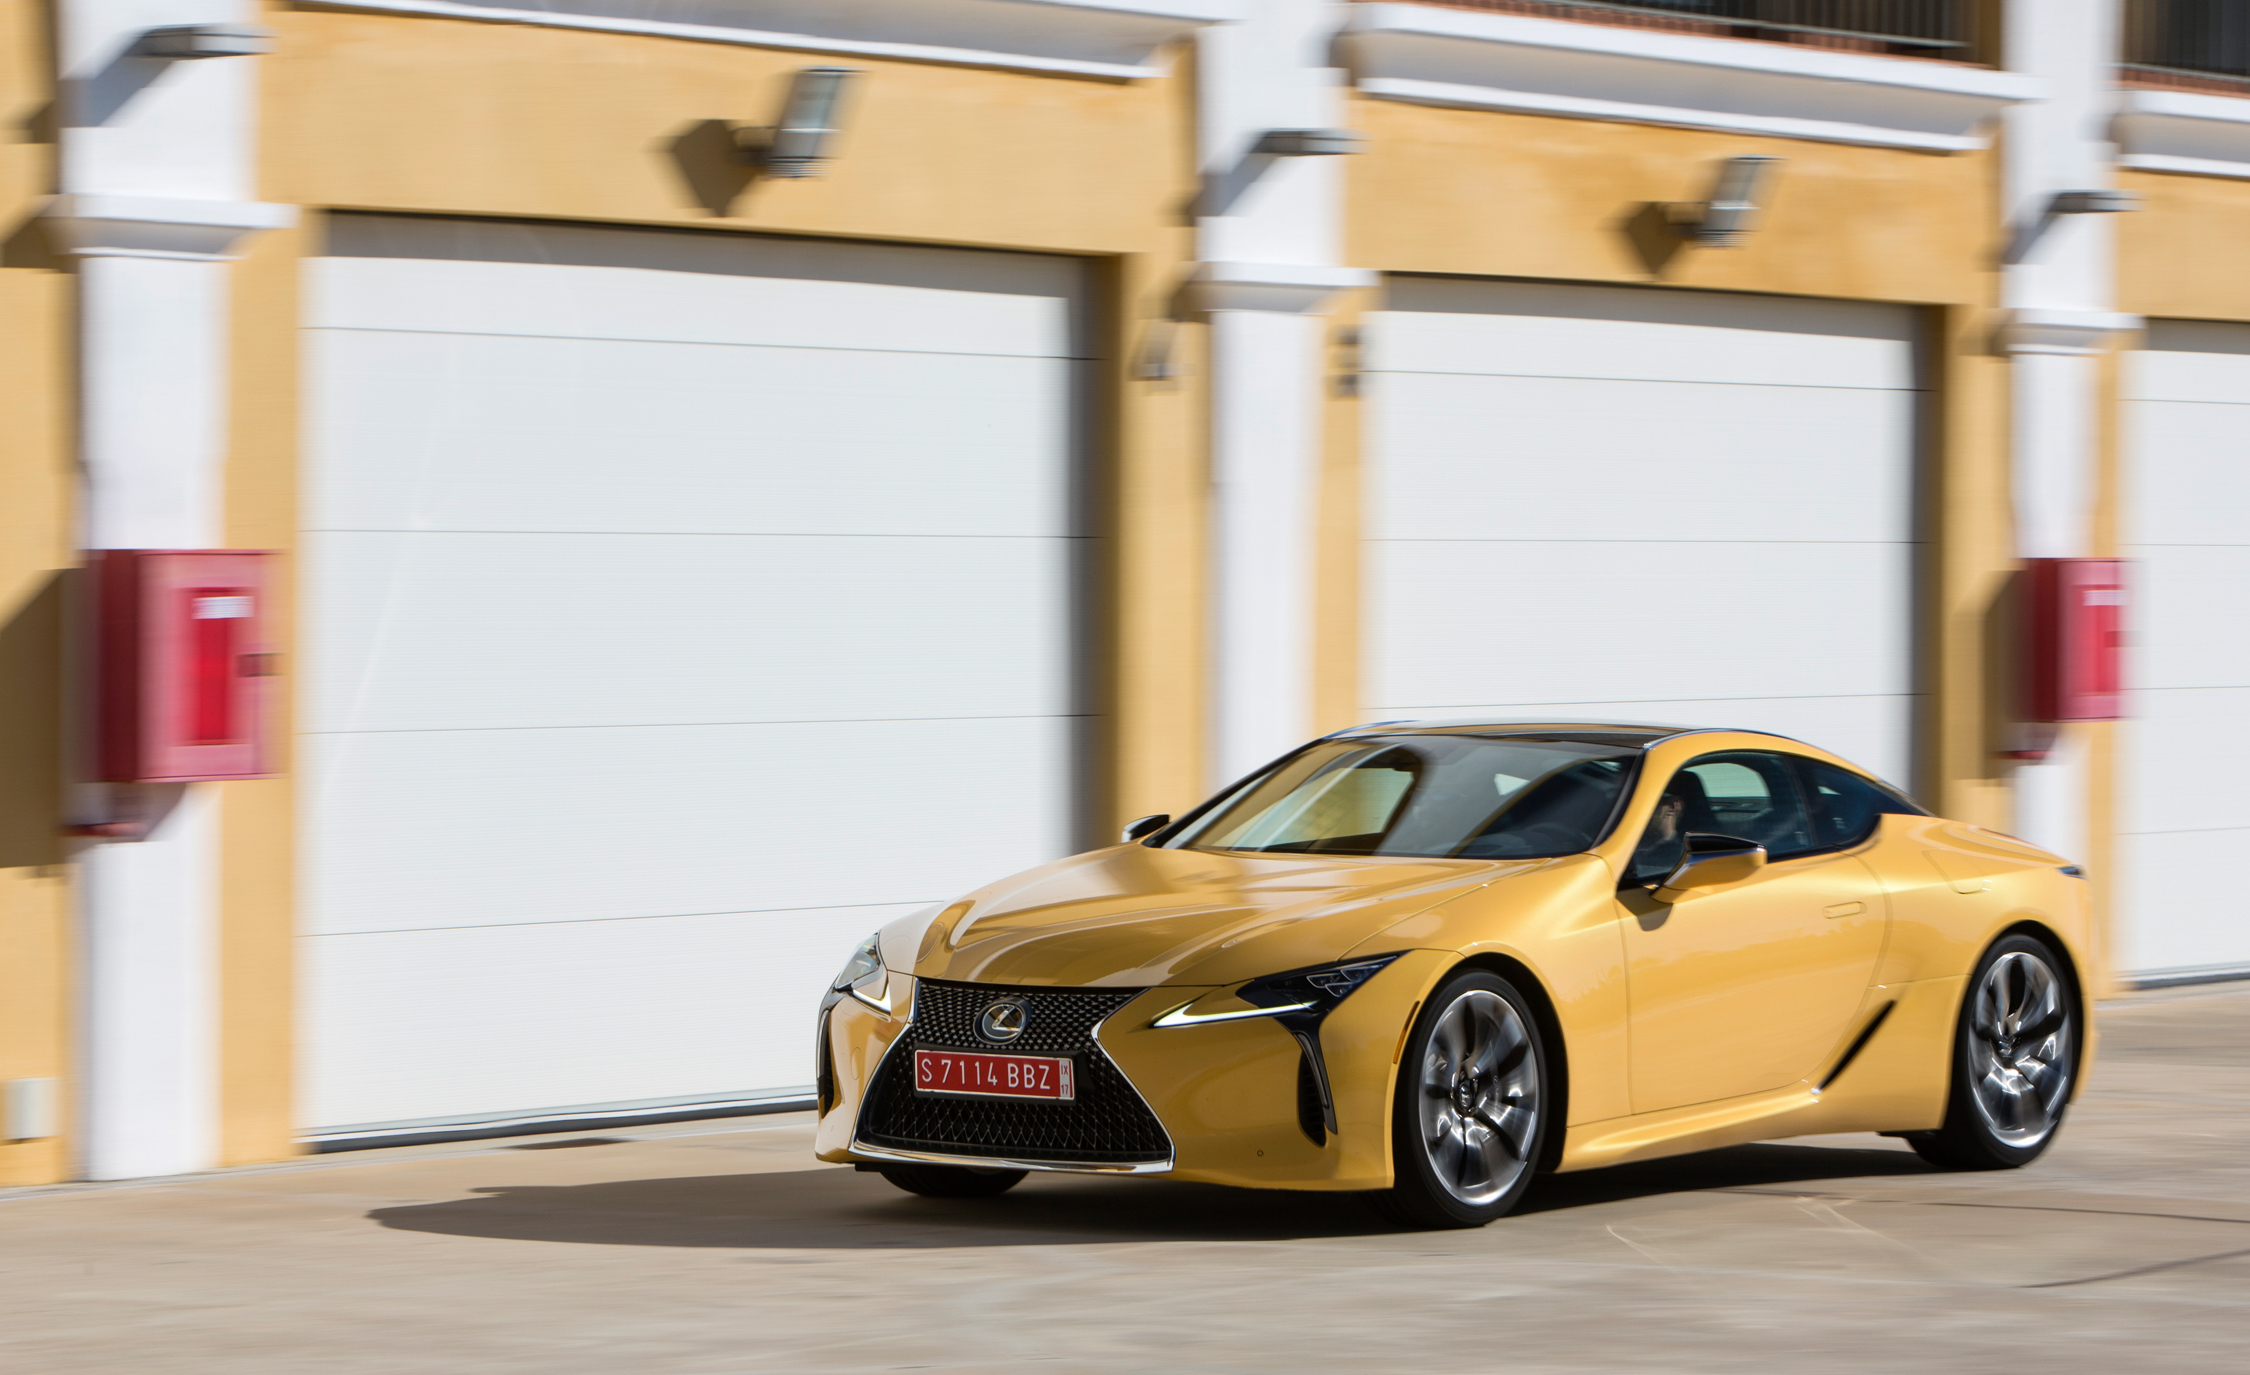 2018 Lexus Lc 500 Yellow (View 8 of 84)